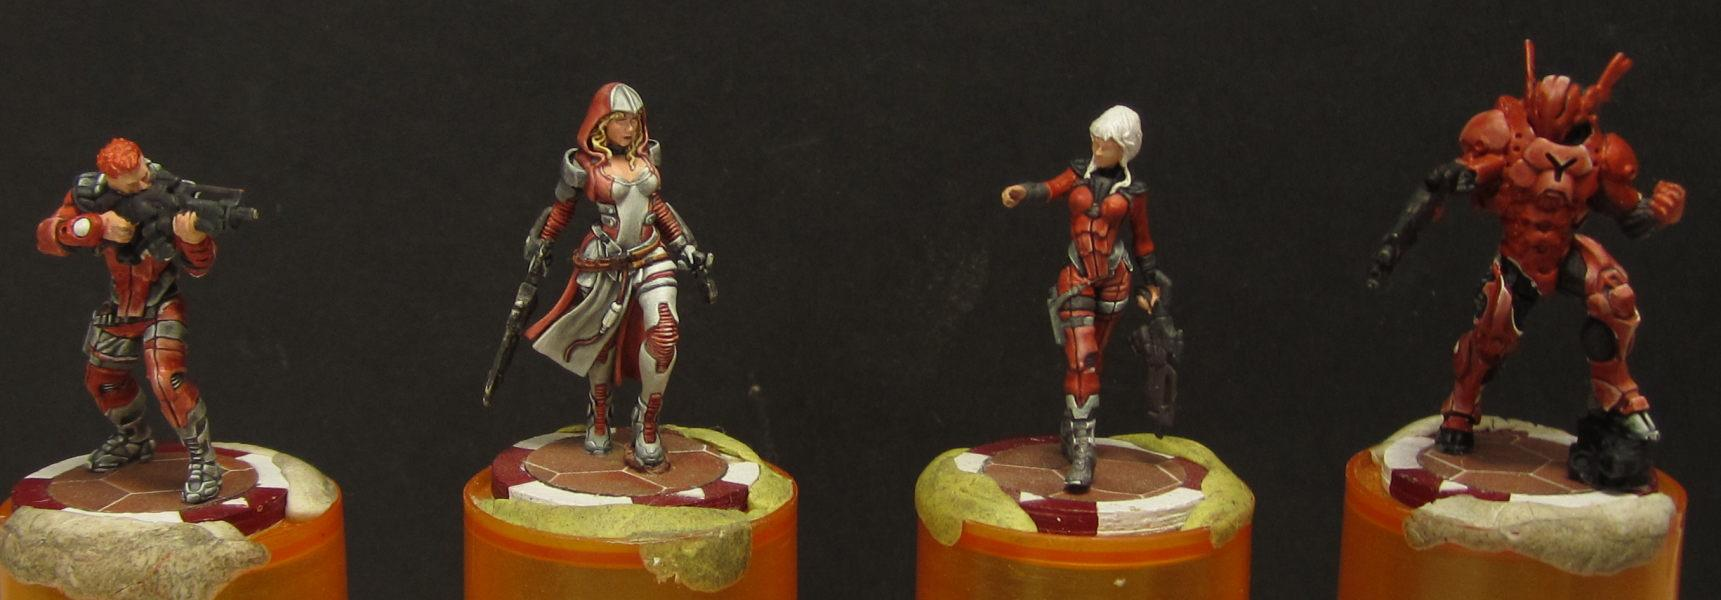 Infinity, Nomads, WIP Nomads